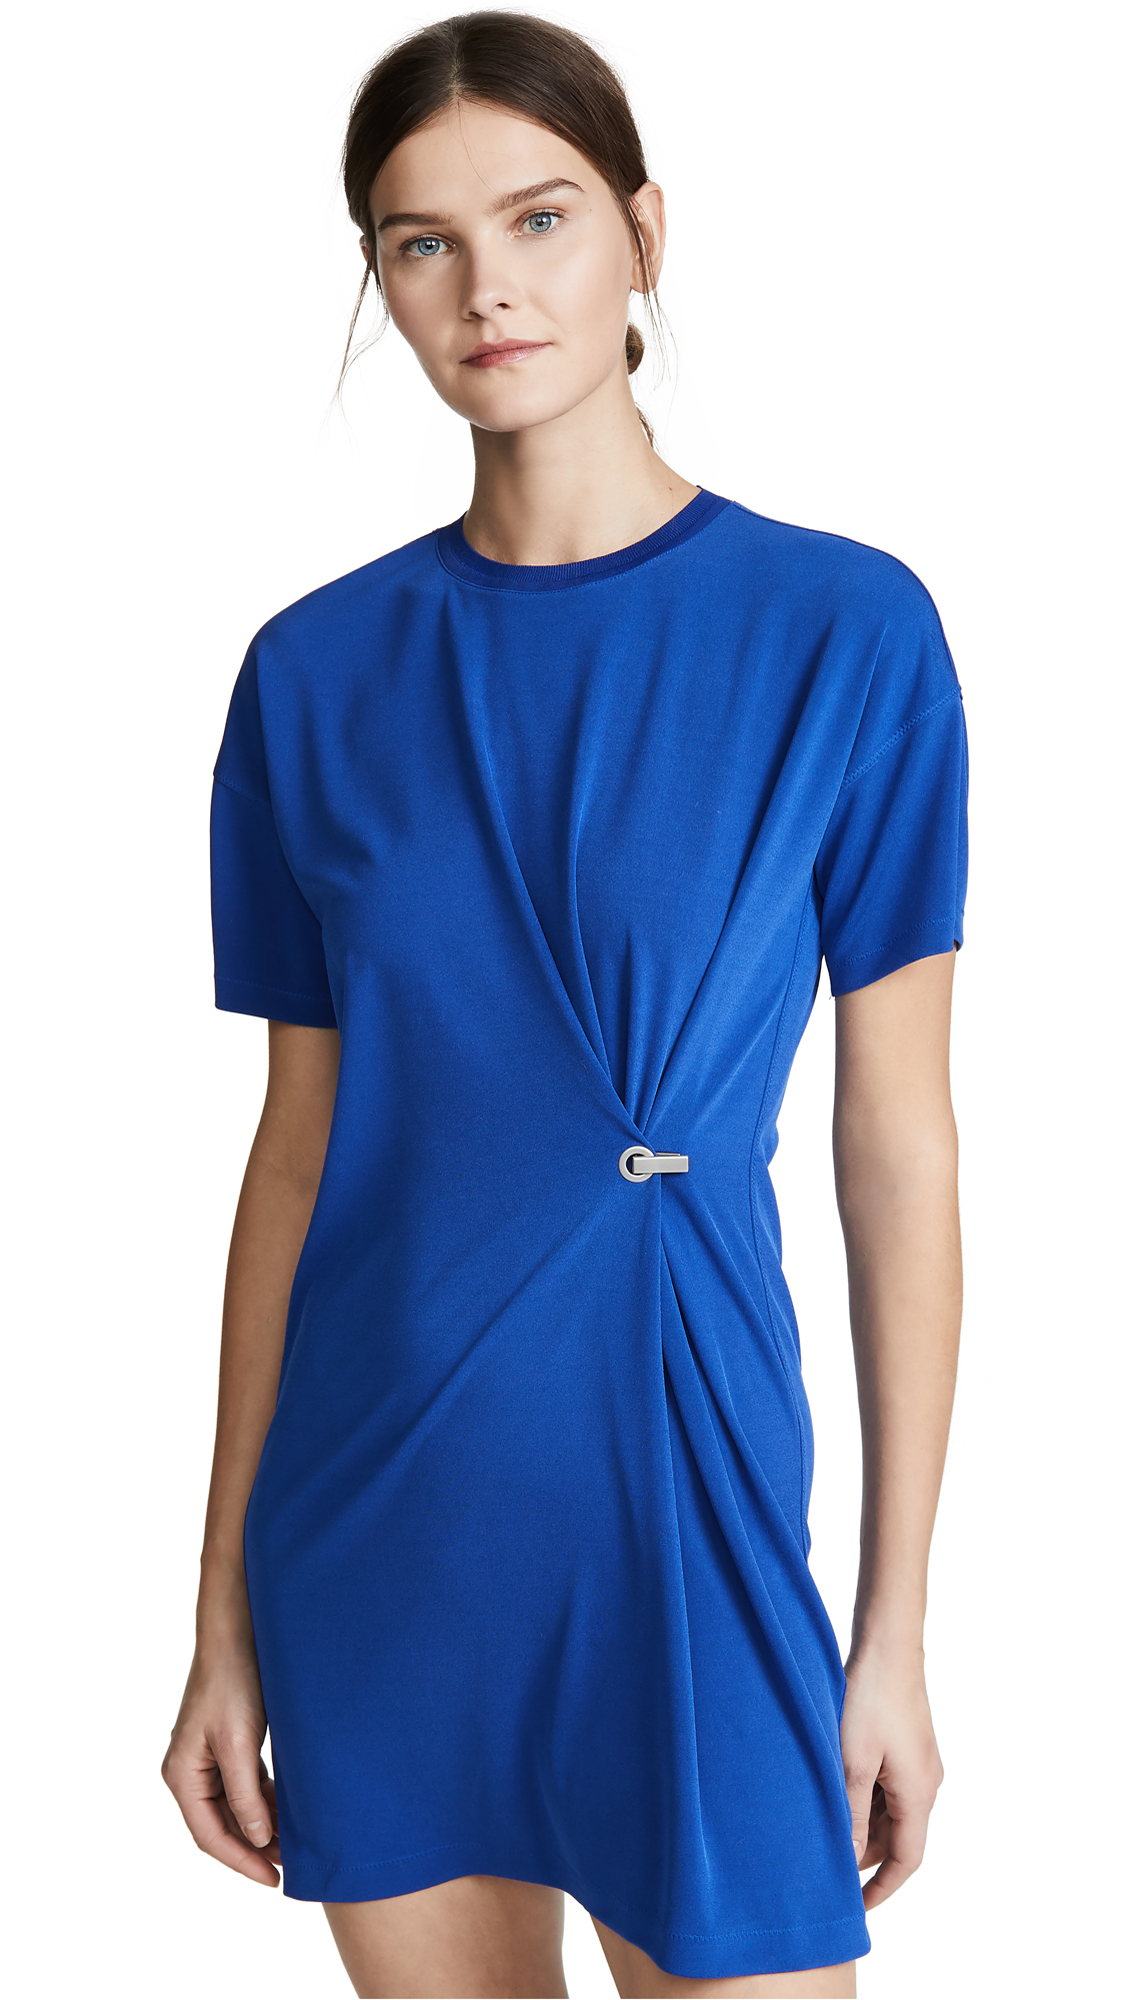 Rag & Bone Mitchell Dress - Pacific Blue